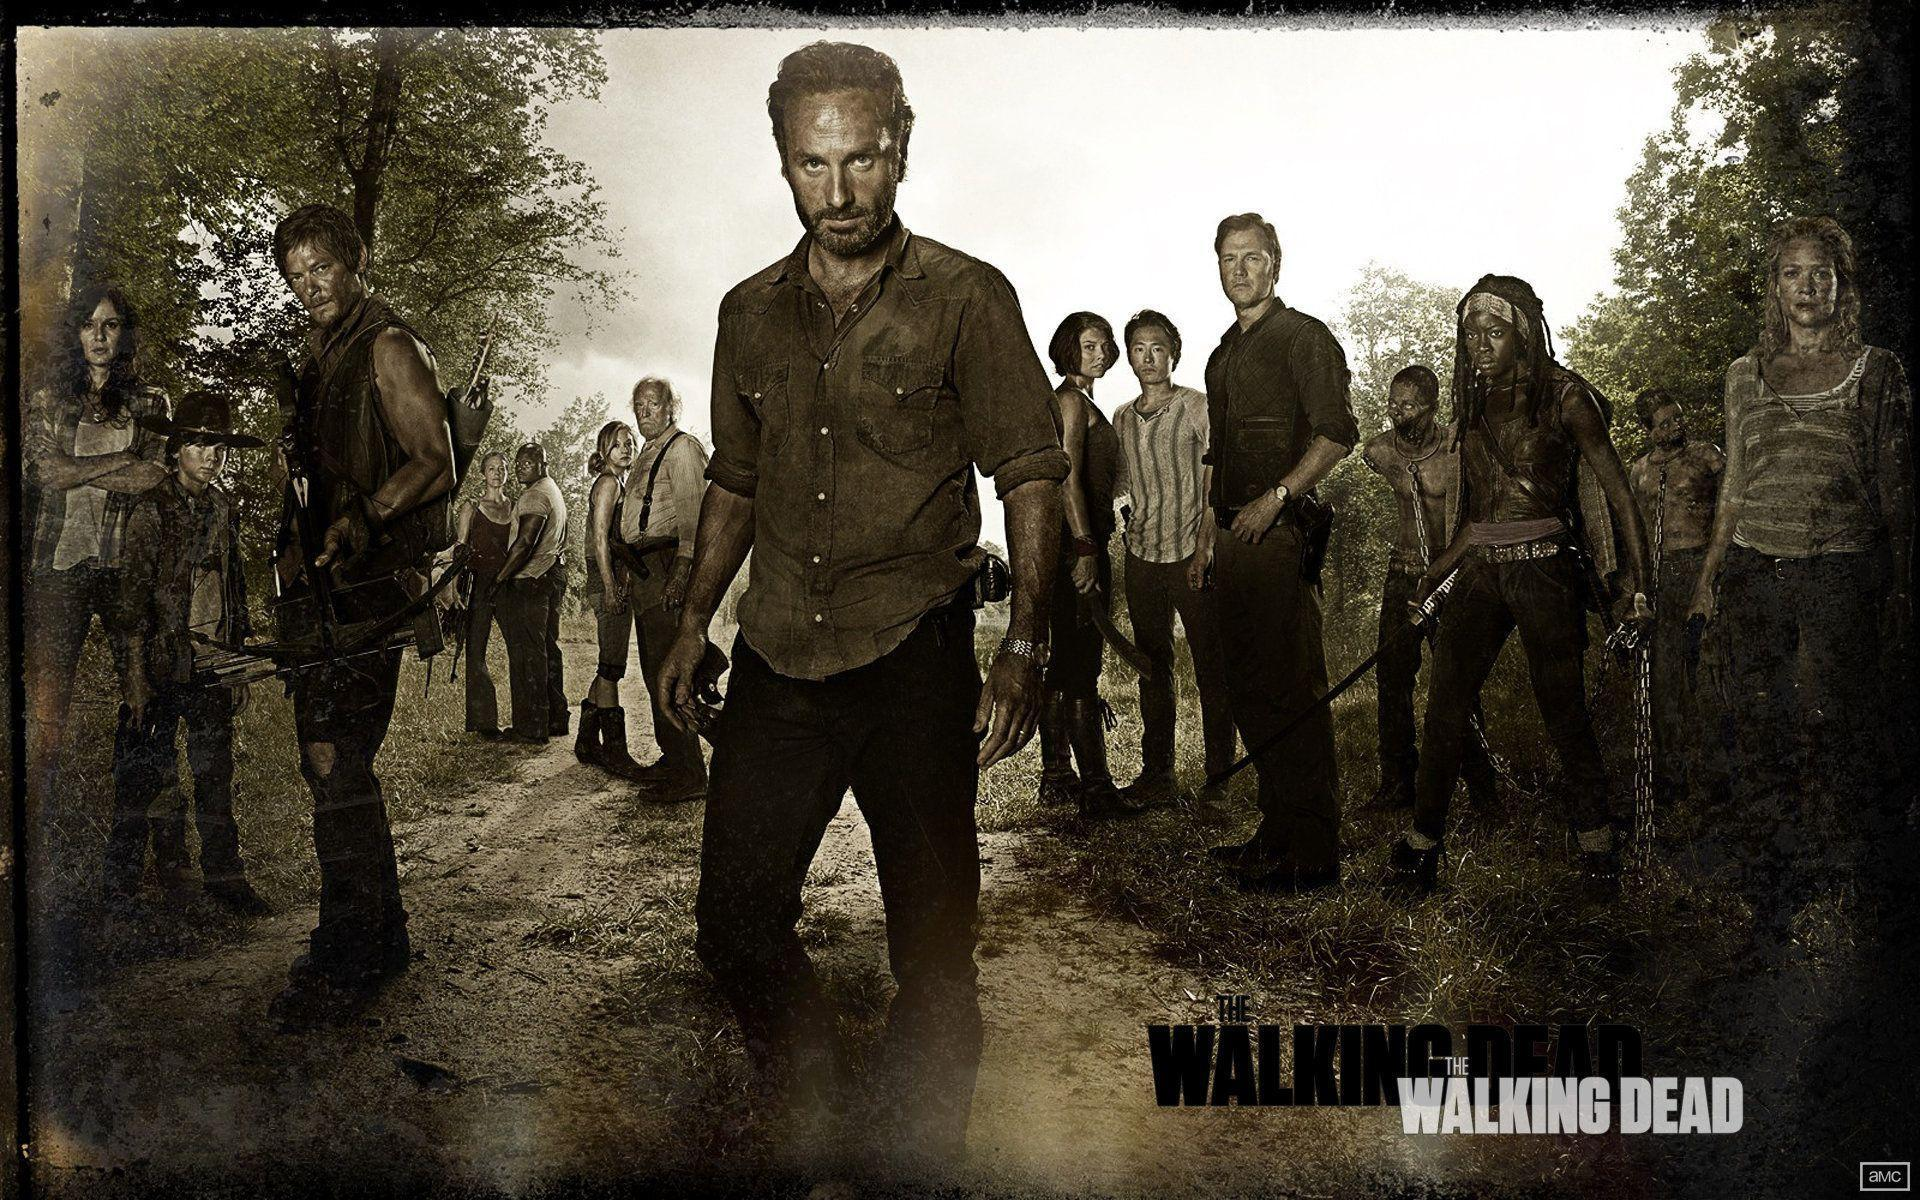 The Walking Dead Free Wallpapers Wallpaper Cave